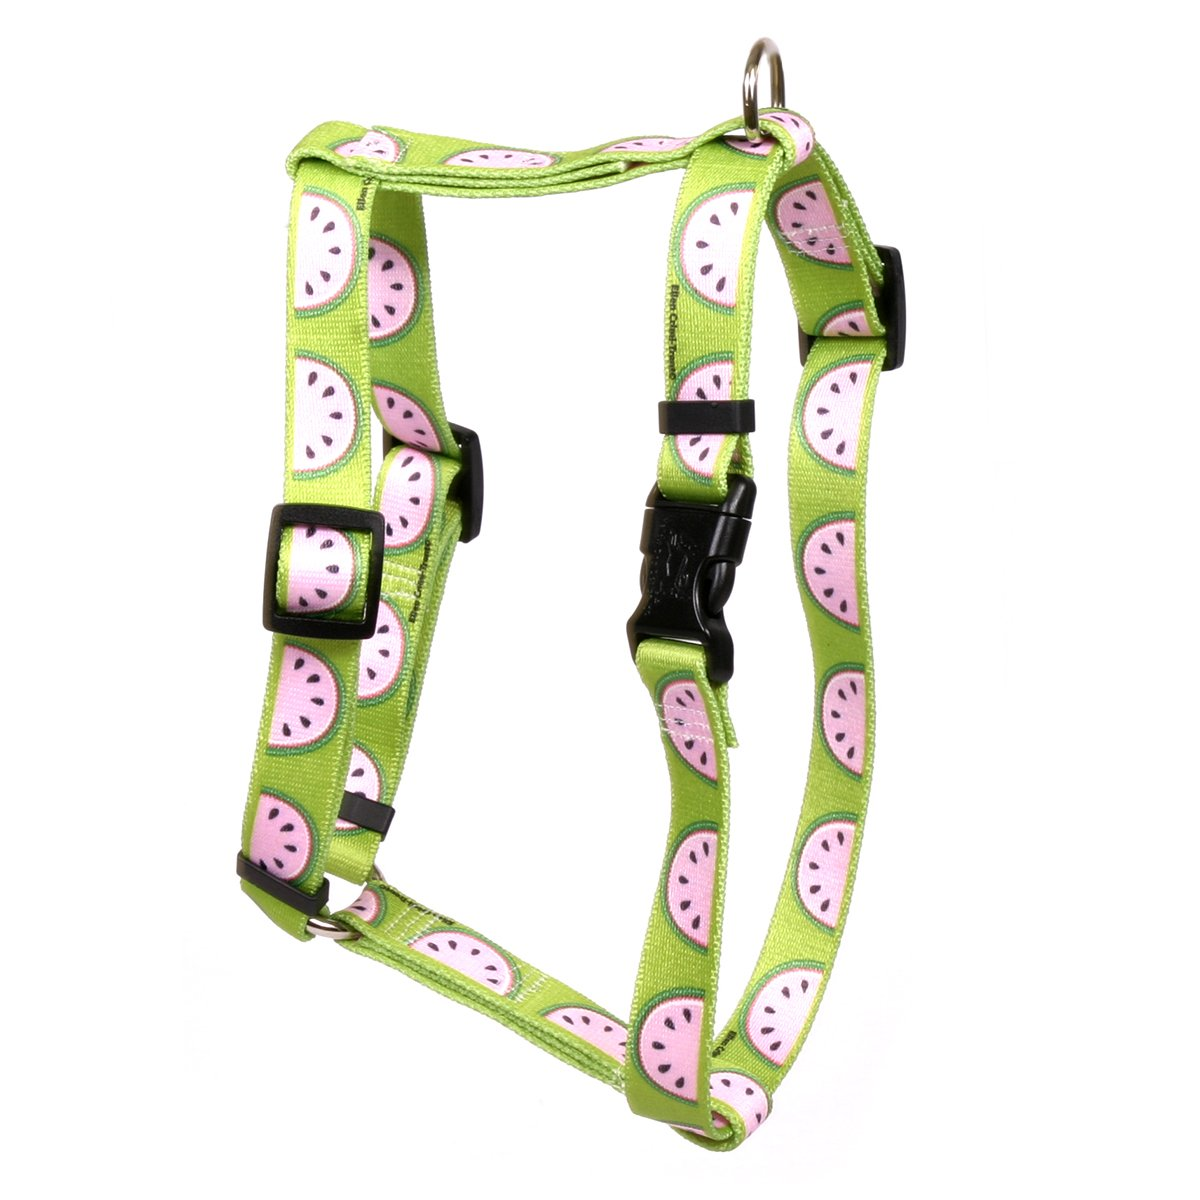 Yellow Dog Design Wonderful Watermelons Roman Style Dog Harness-X-Small-3/8 and fits Chest 8 to 14''